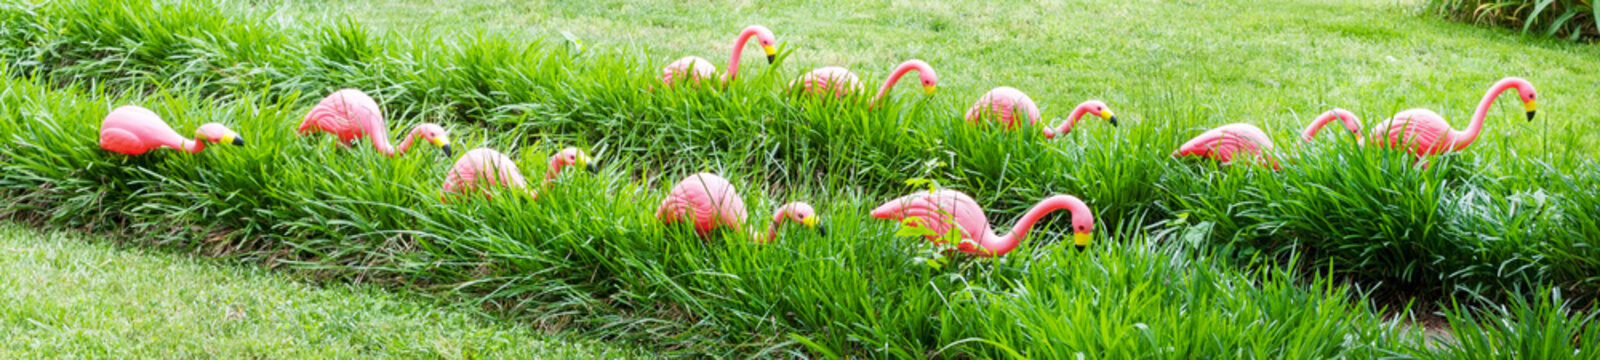 Tacky pink flamingos lining path leading to home.